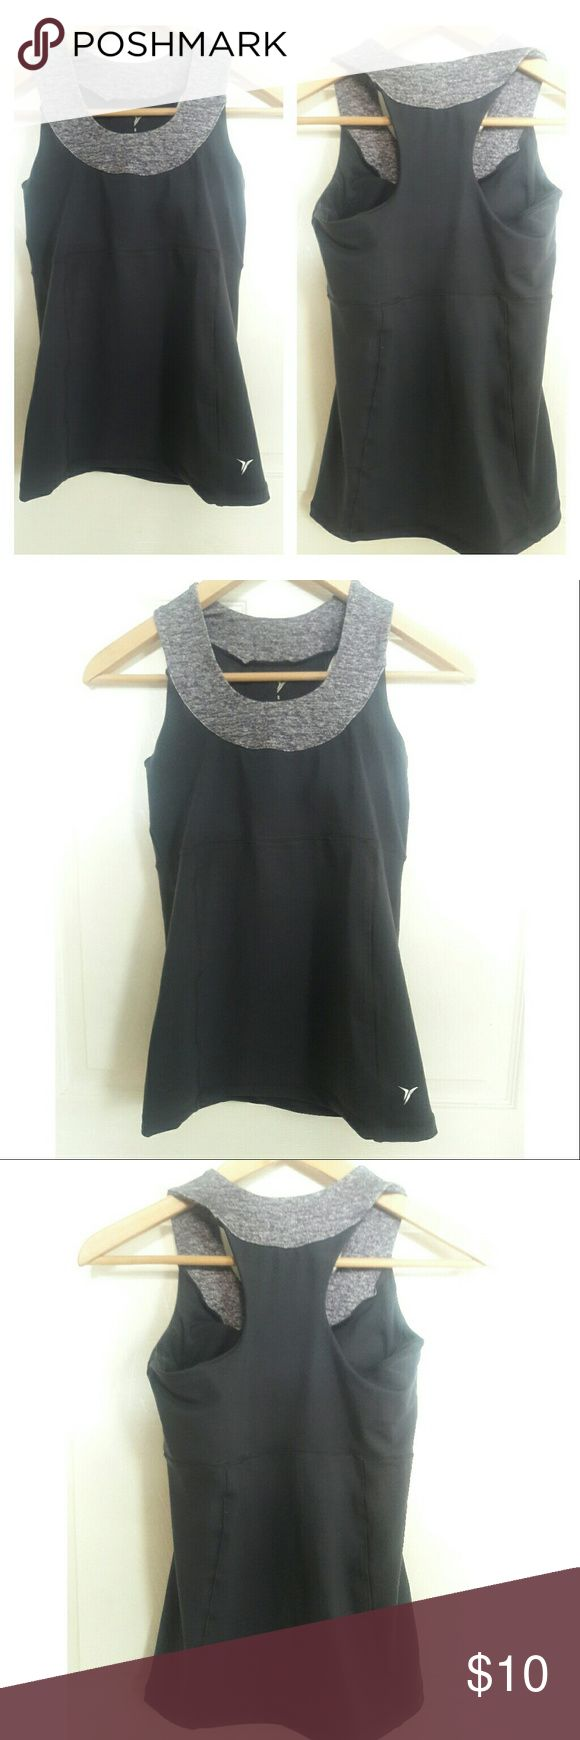 Old Navy Gray Athletic Workout Razorback top Old Navy Gray Athletic Workout Razorback top. Worn once. Size S. Smoke free home! Old Navy Tops